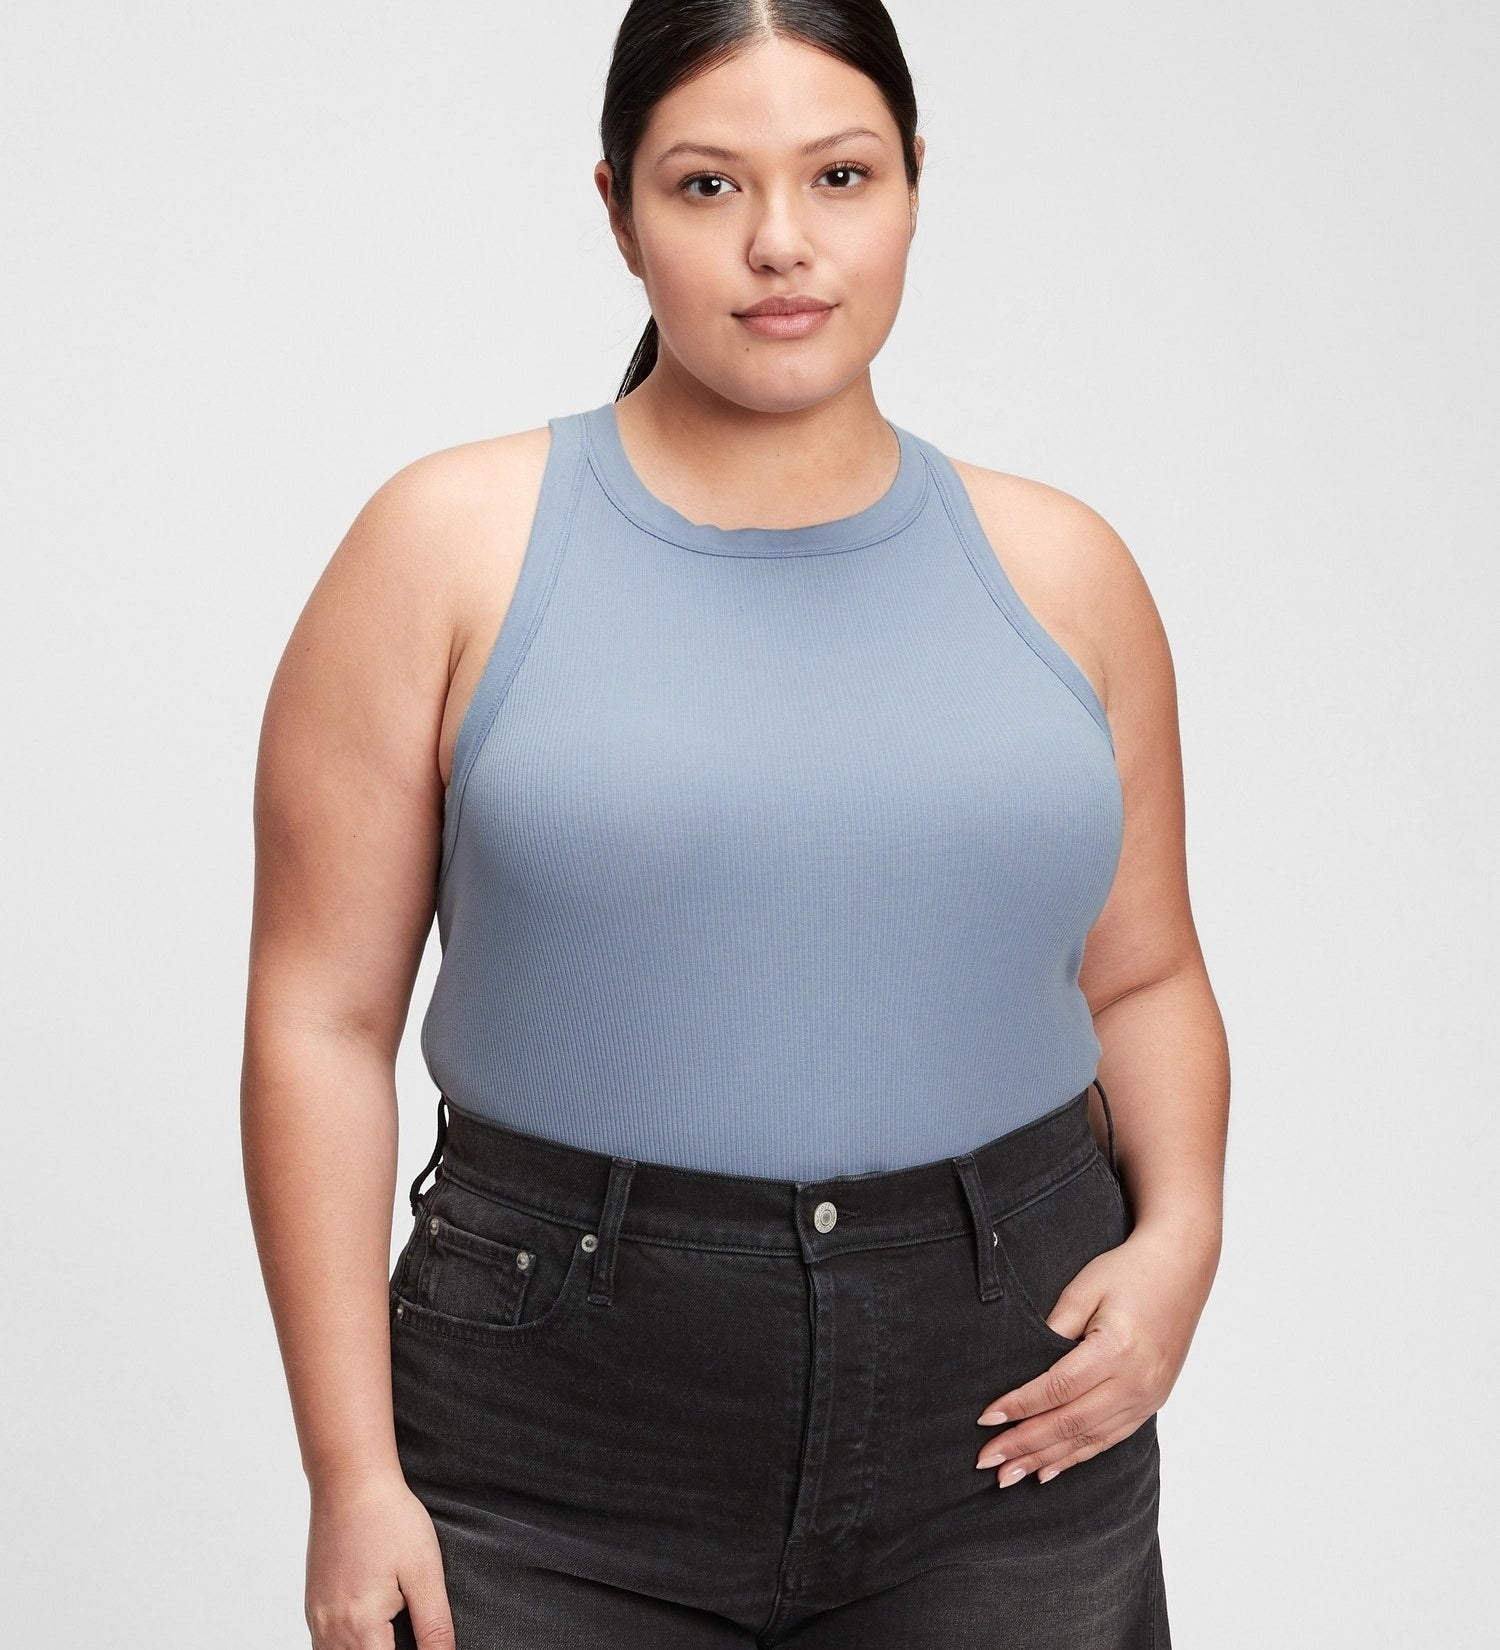 a person wearing the tank with a pair of jeans